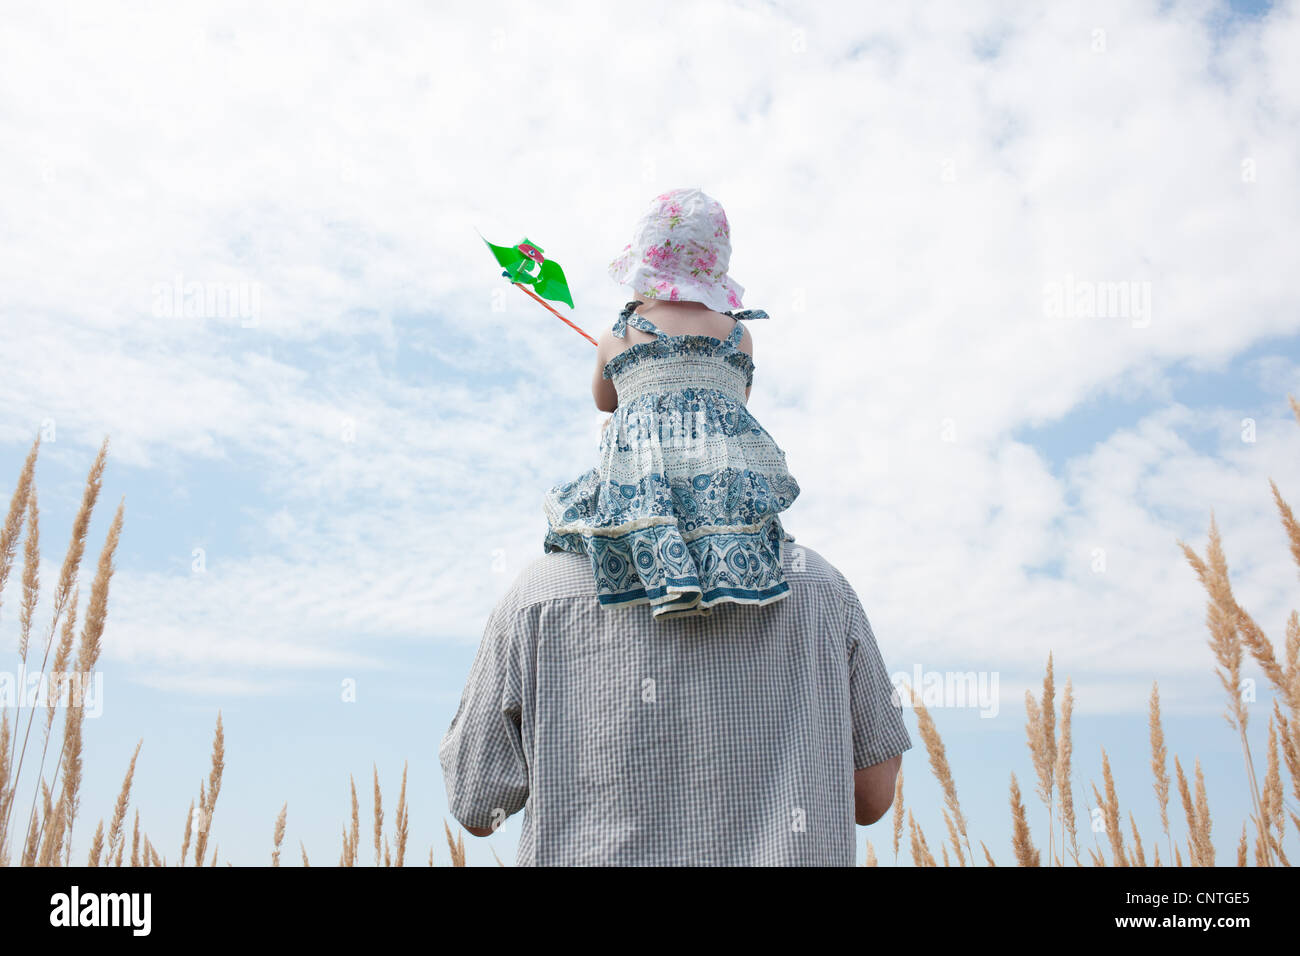 Man carrying daughter on shoulders - Stock Image